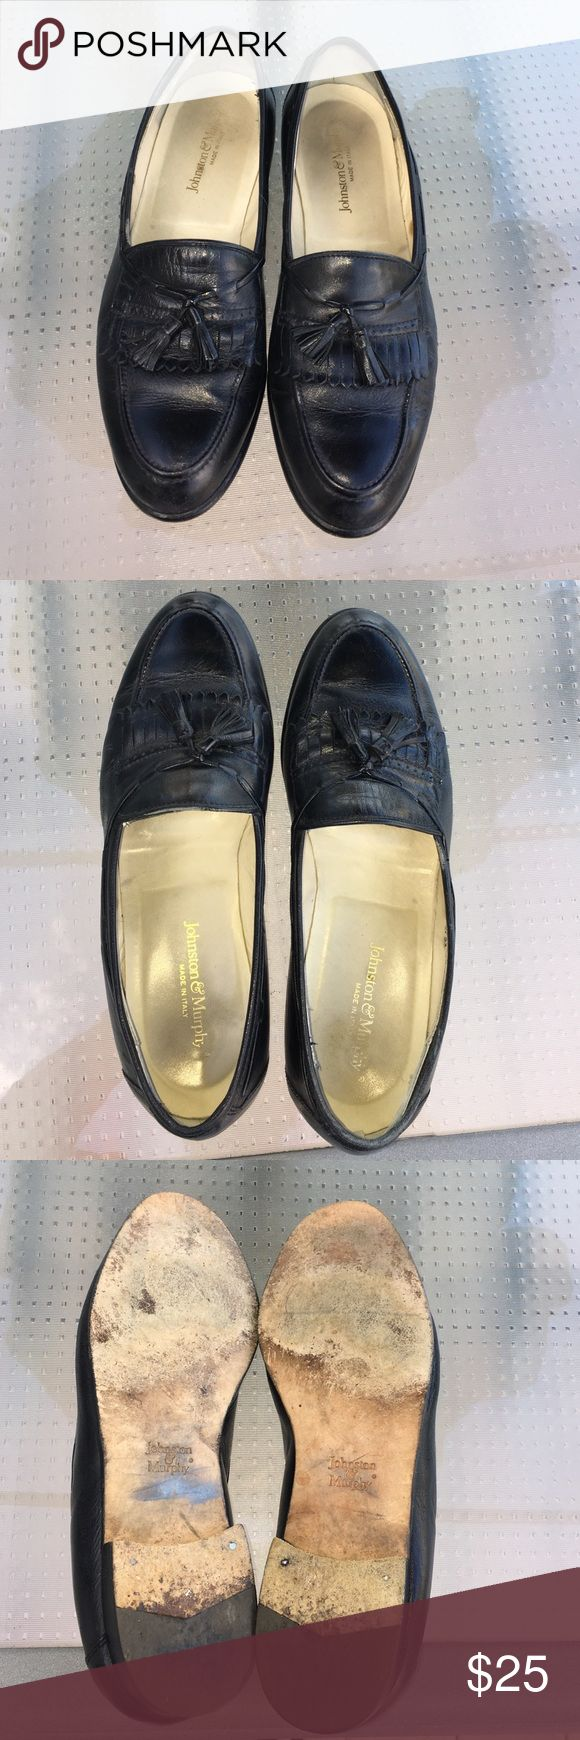 Mens Johnston & Murphy Italian Loafers Black tassel loafers in good condition. All leather, including soles. Some marks on inside. Made in Italy. Size 10M Johnston & Murphy Shoes Loafers & Slip-Ons